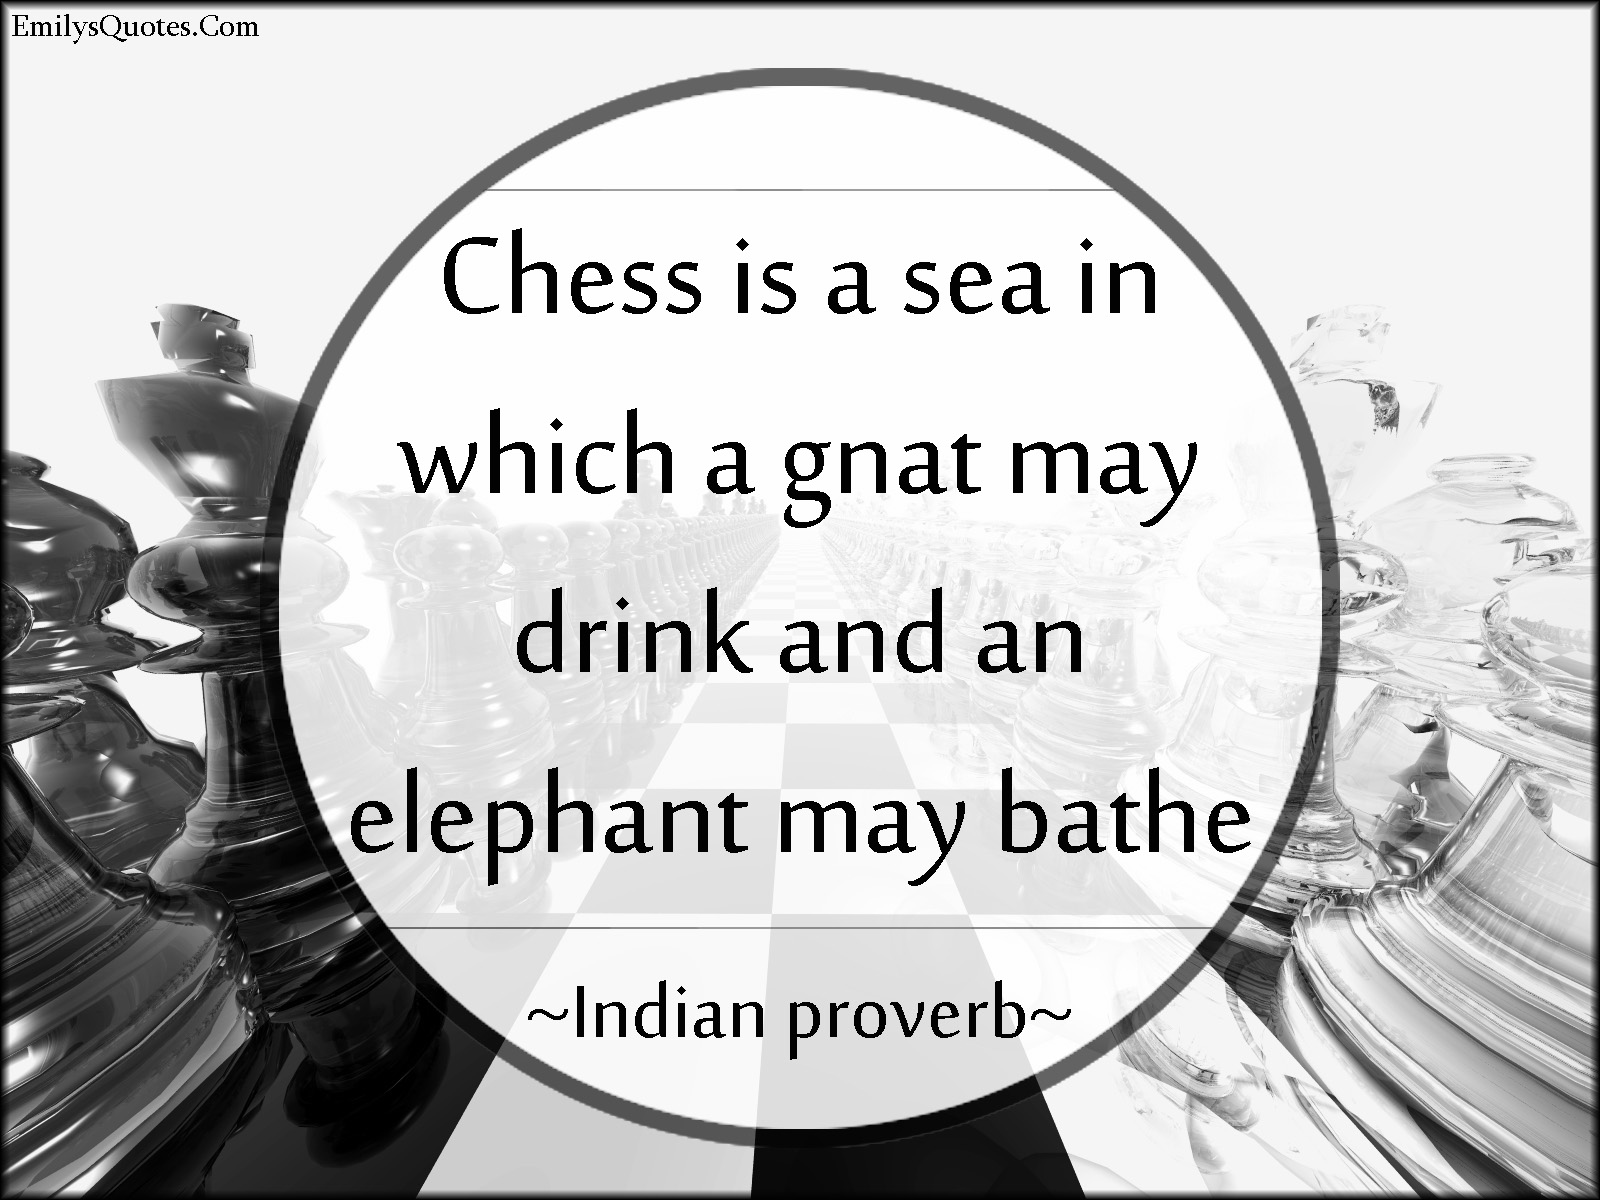 EmilysQuotes.Com - chess, sport, wisdom, intelligent, Indian proverb